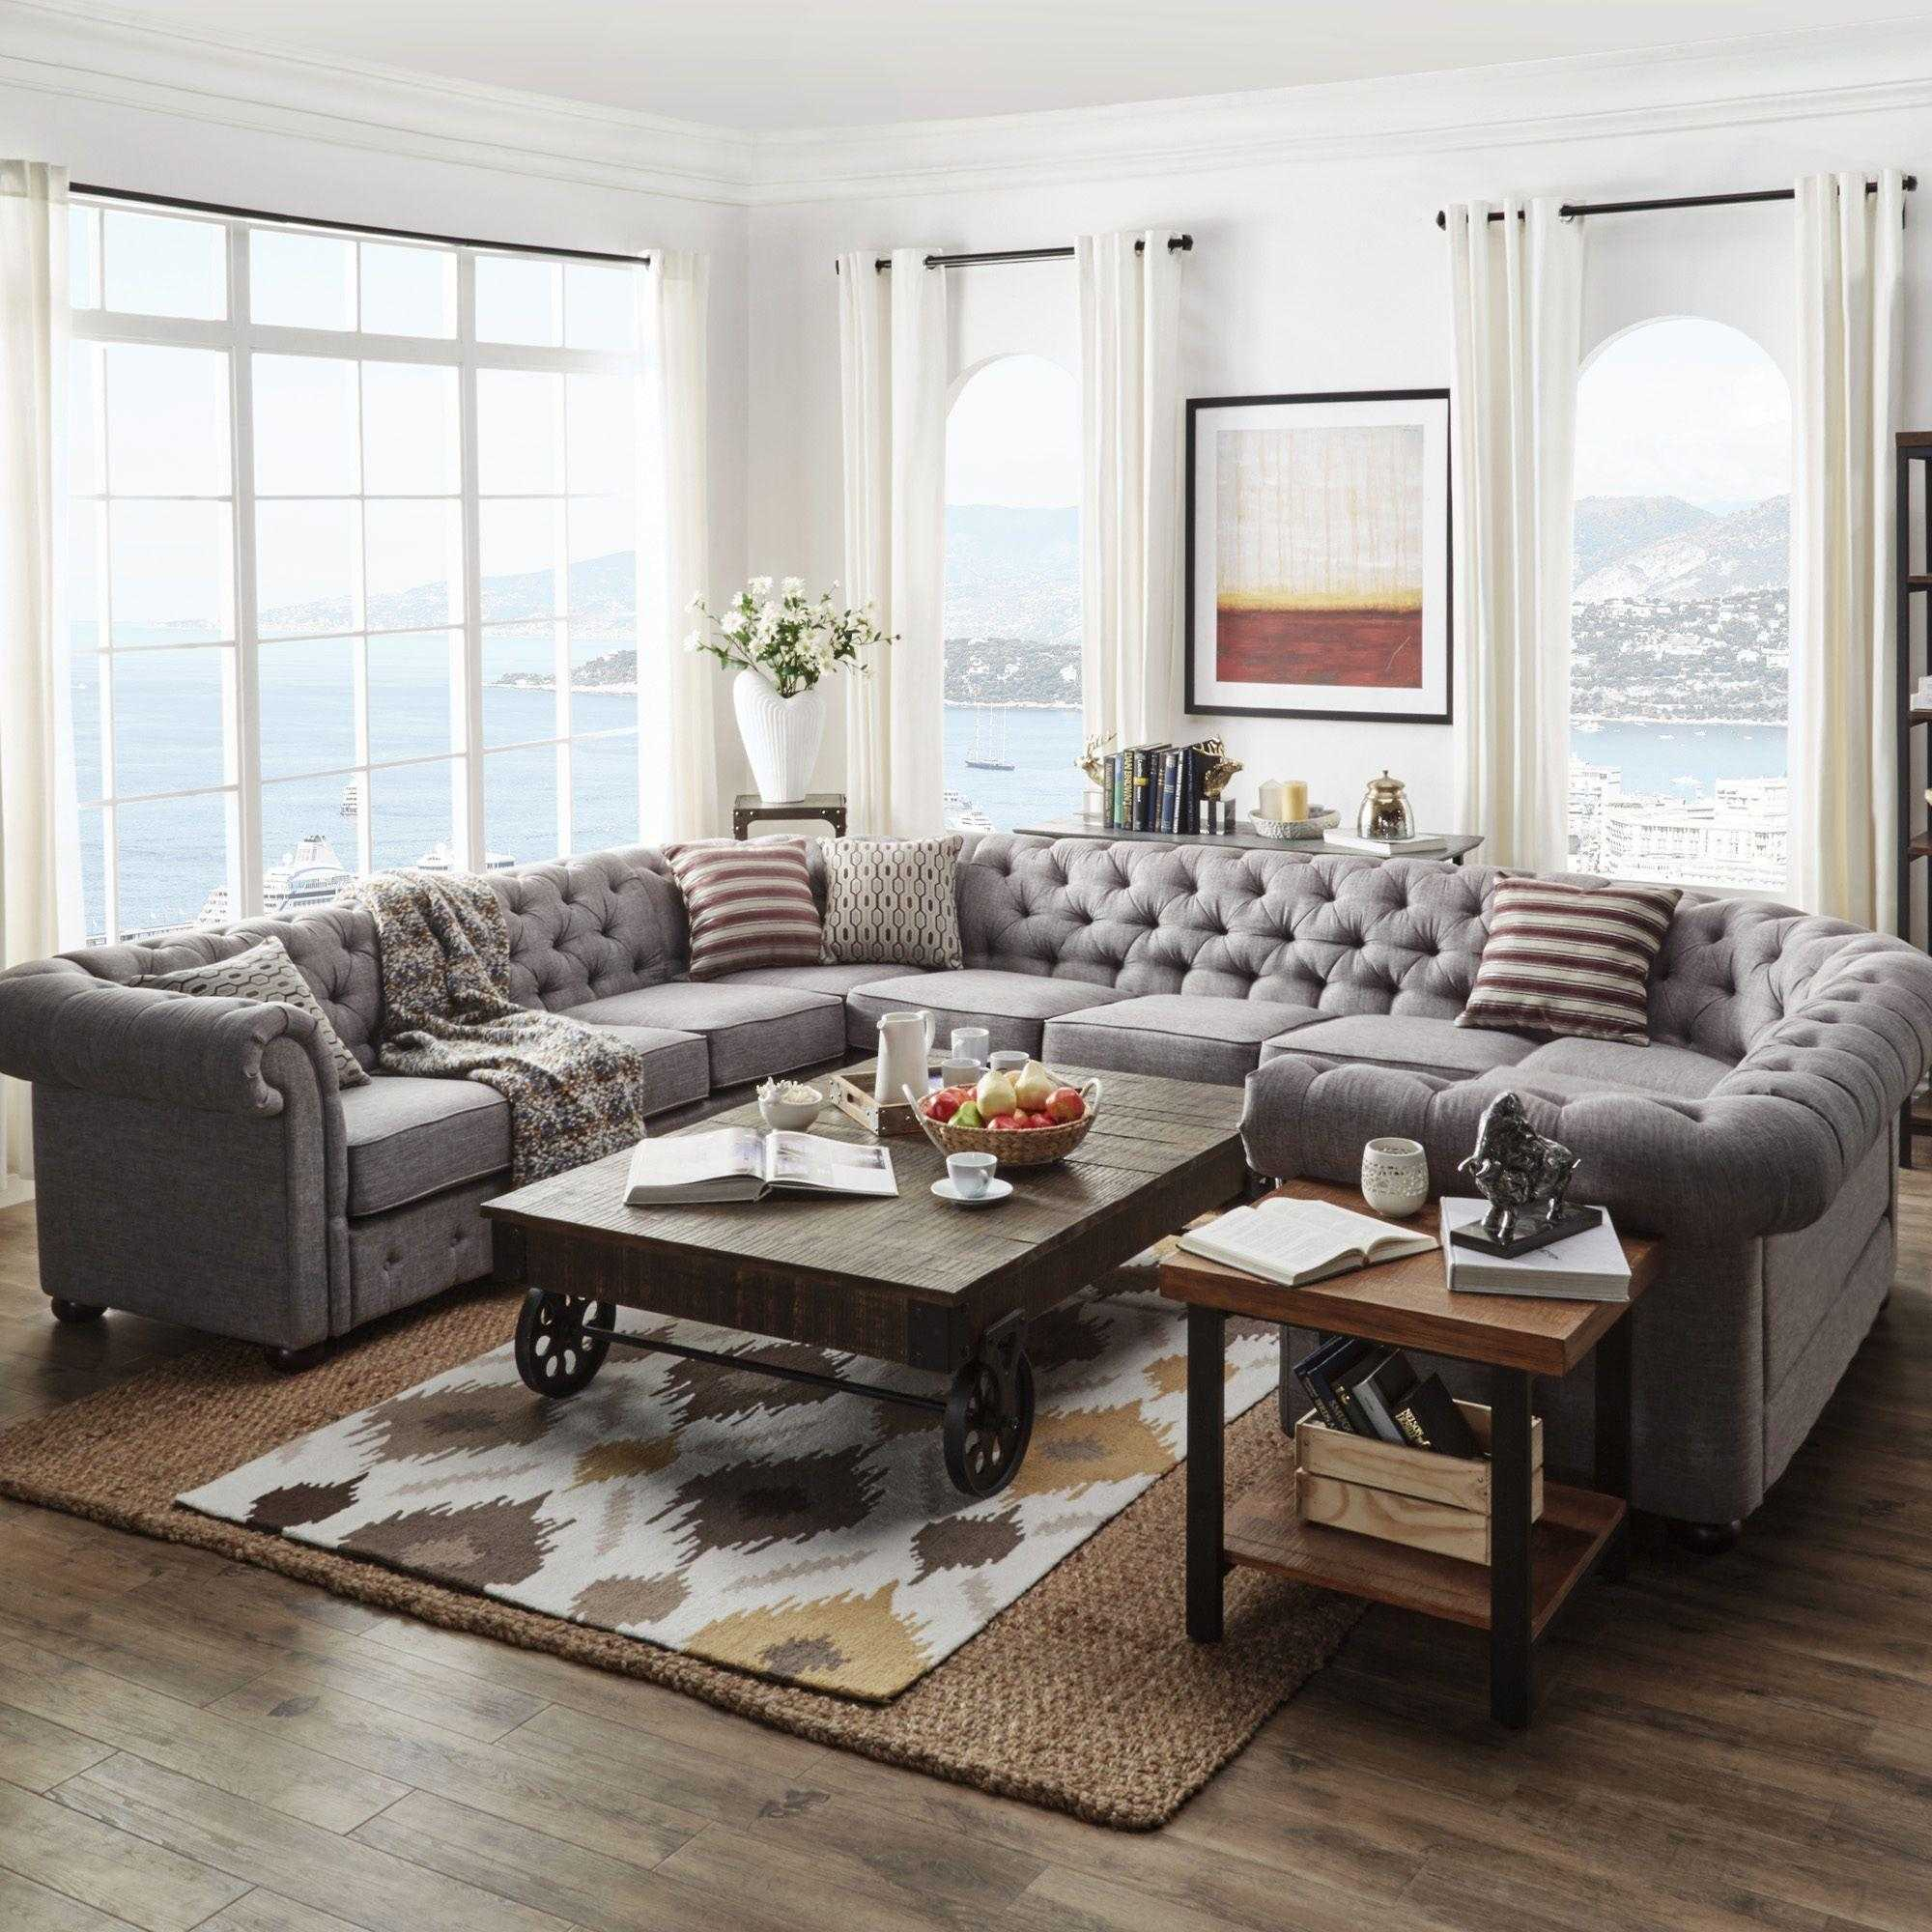 rooms coffee table sets tables trends including fabulous living room set ideas couches accent chairs latest home design kids chair and pier imports outdoor furniture glass desk